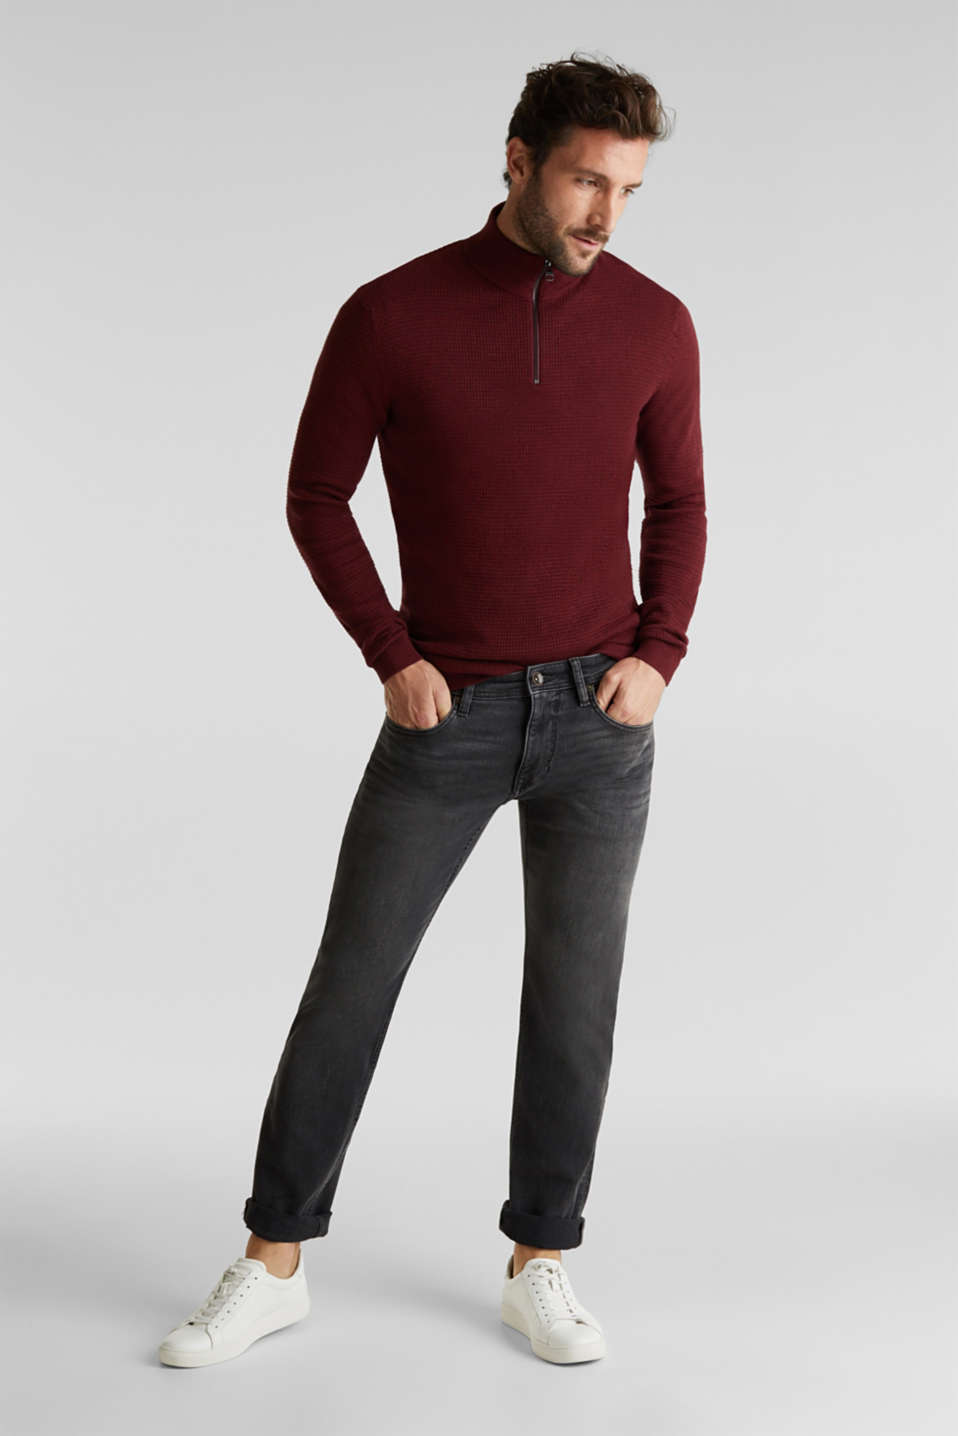 With cashmere: Textured knit jumper, DARK RED, detail image number 1